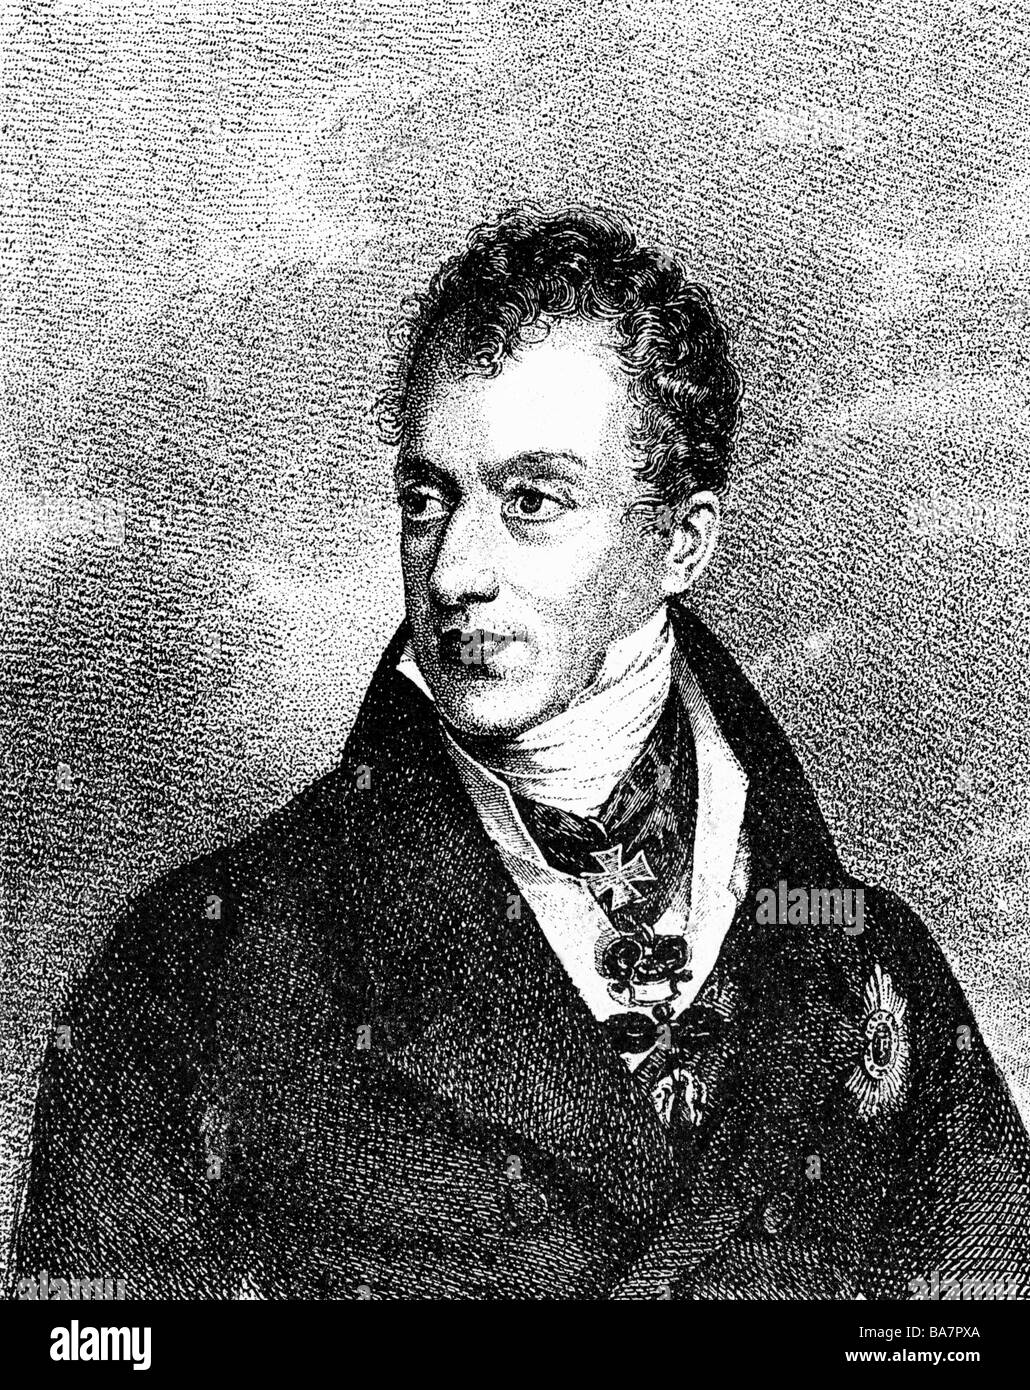 the ideology and role in history of prince klemens von metternich